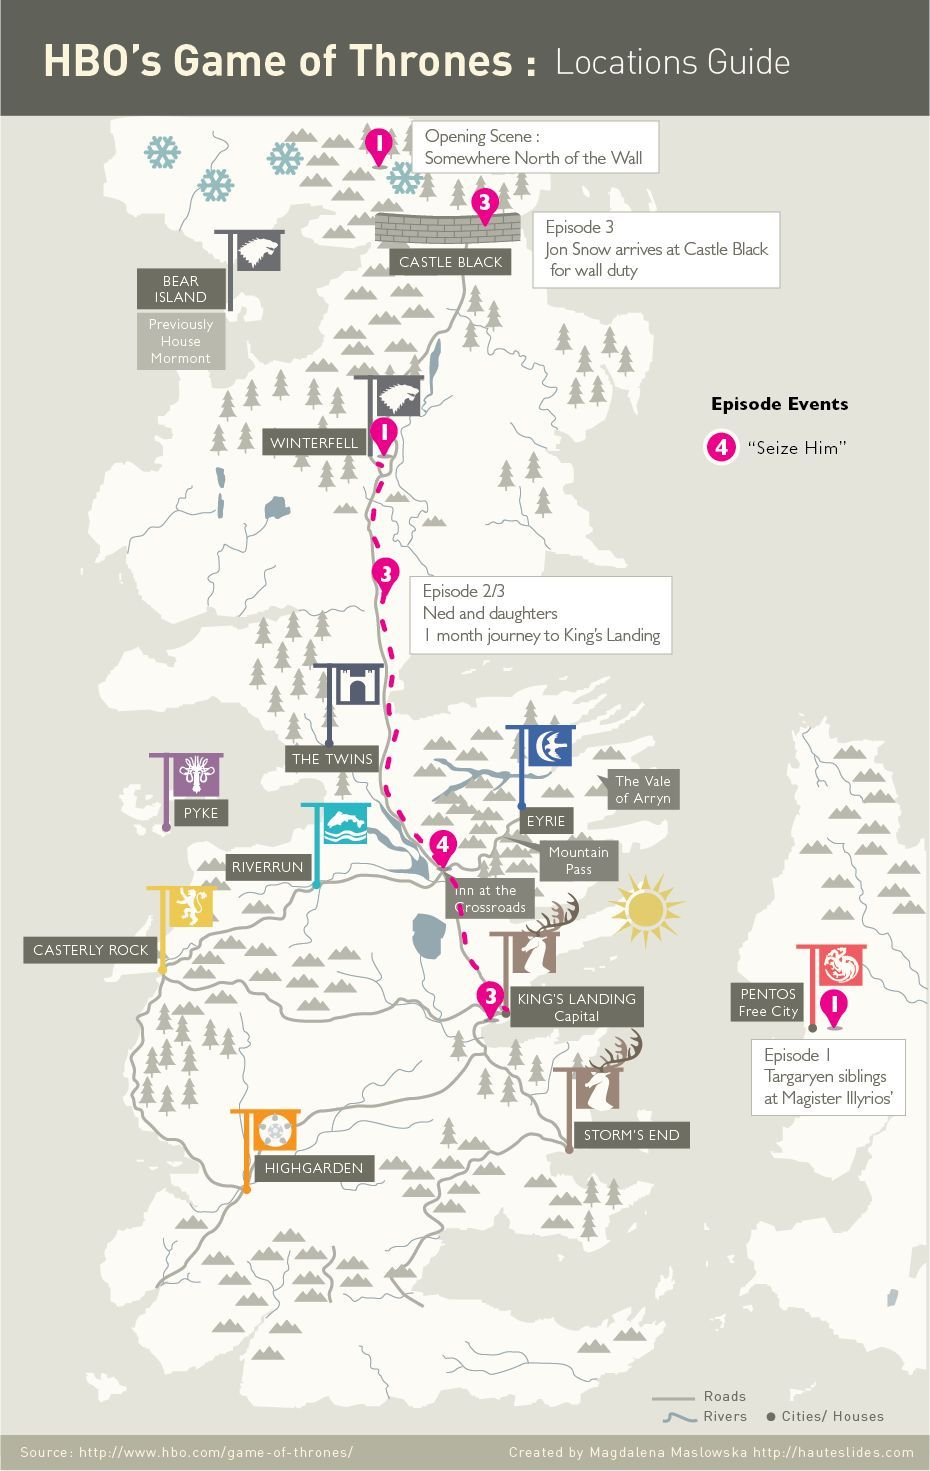 Infographics hbos game of thrones locations guide got infographics hbos game of thrones locations guide gumiabroncs Gallery